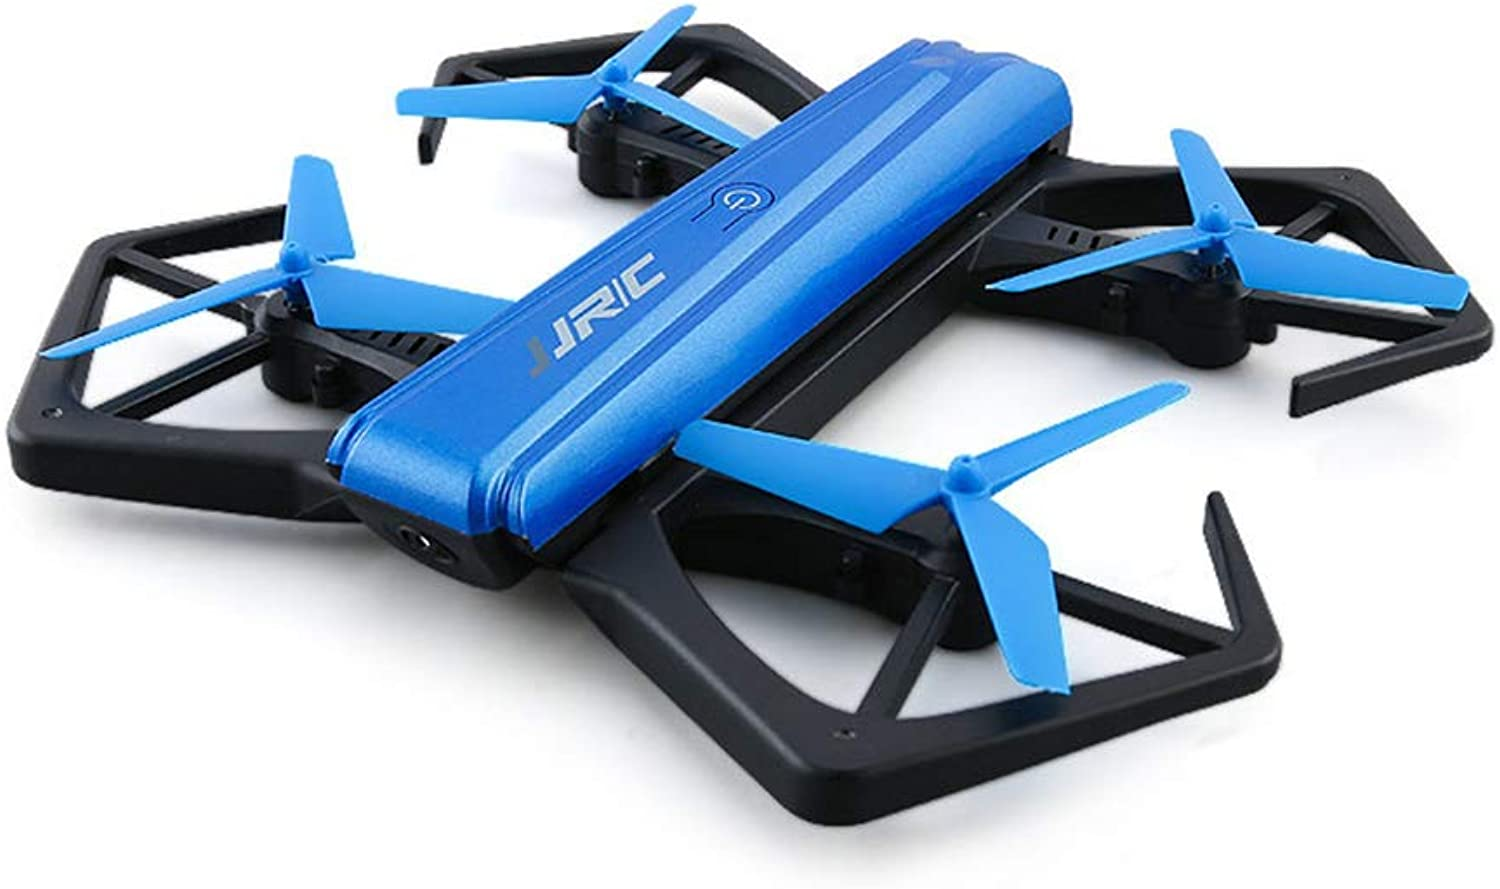 SOSAWEI Foldable Drone with Camera, 720P HD Camera, WIFI Live Video Drone, 6Axis Gyro Pocket Quadcopter for Beginners